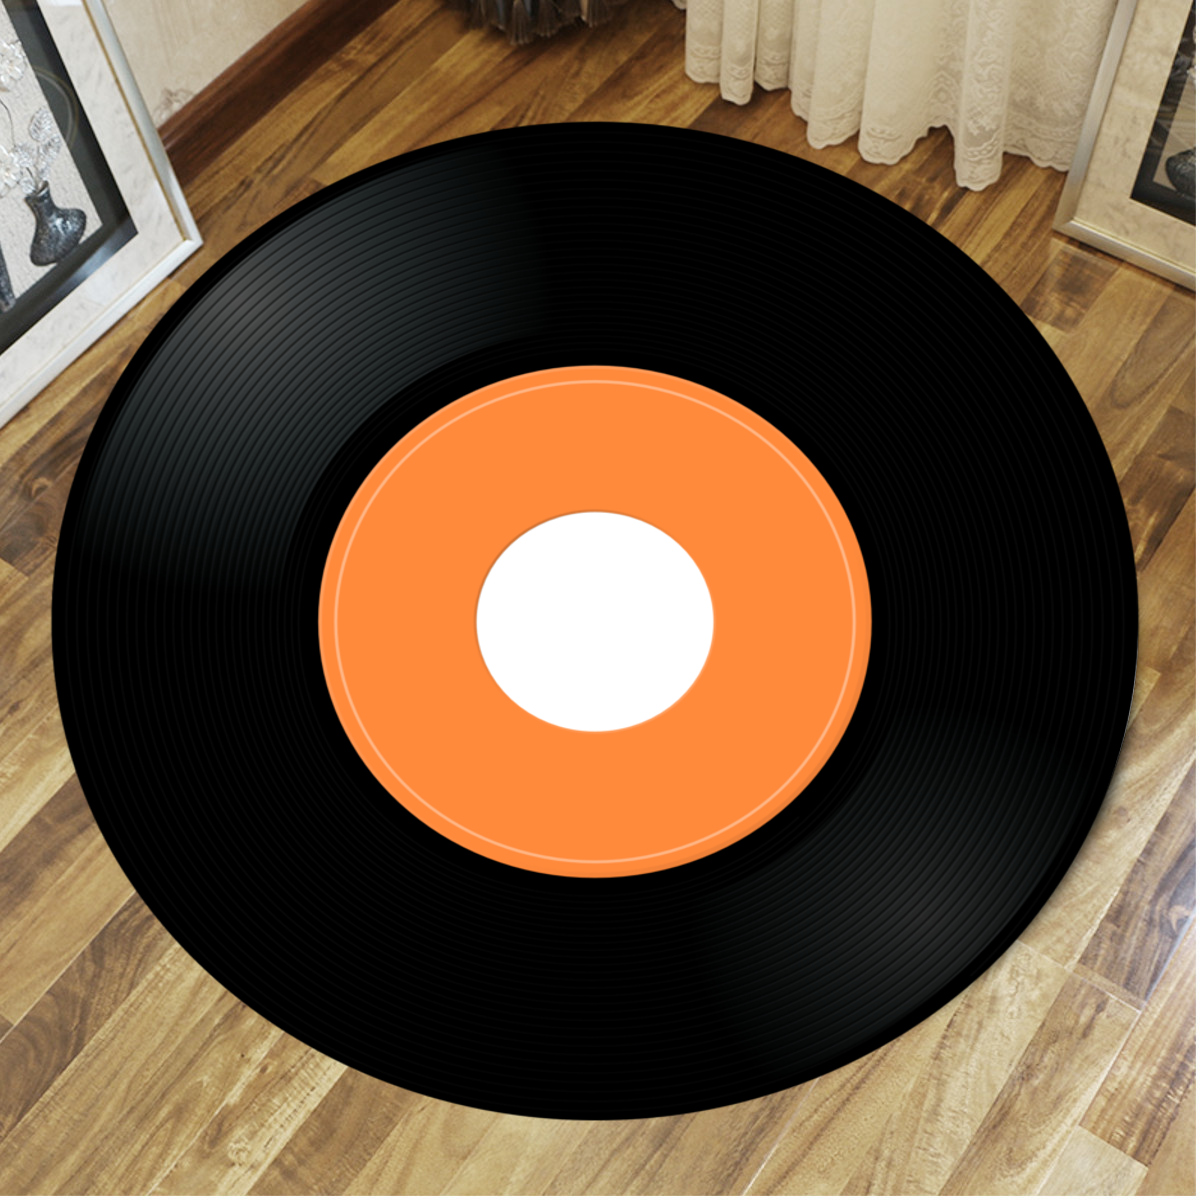 Vinyl Record Printed Soft Fabric Round Floor Mat Carpet Room Area Bedroom Rug Seat Cover Door Rugs